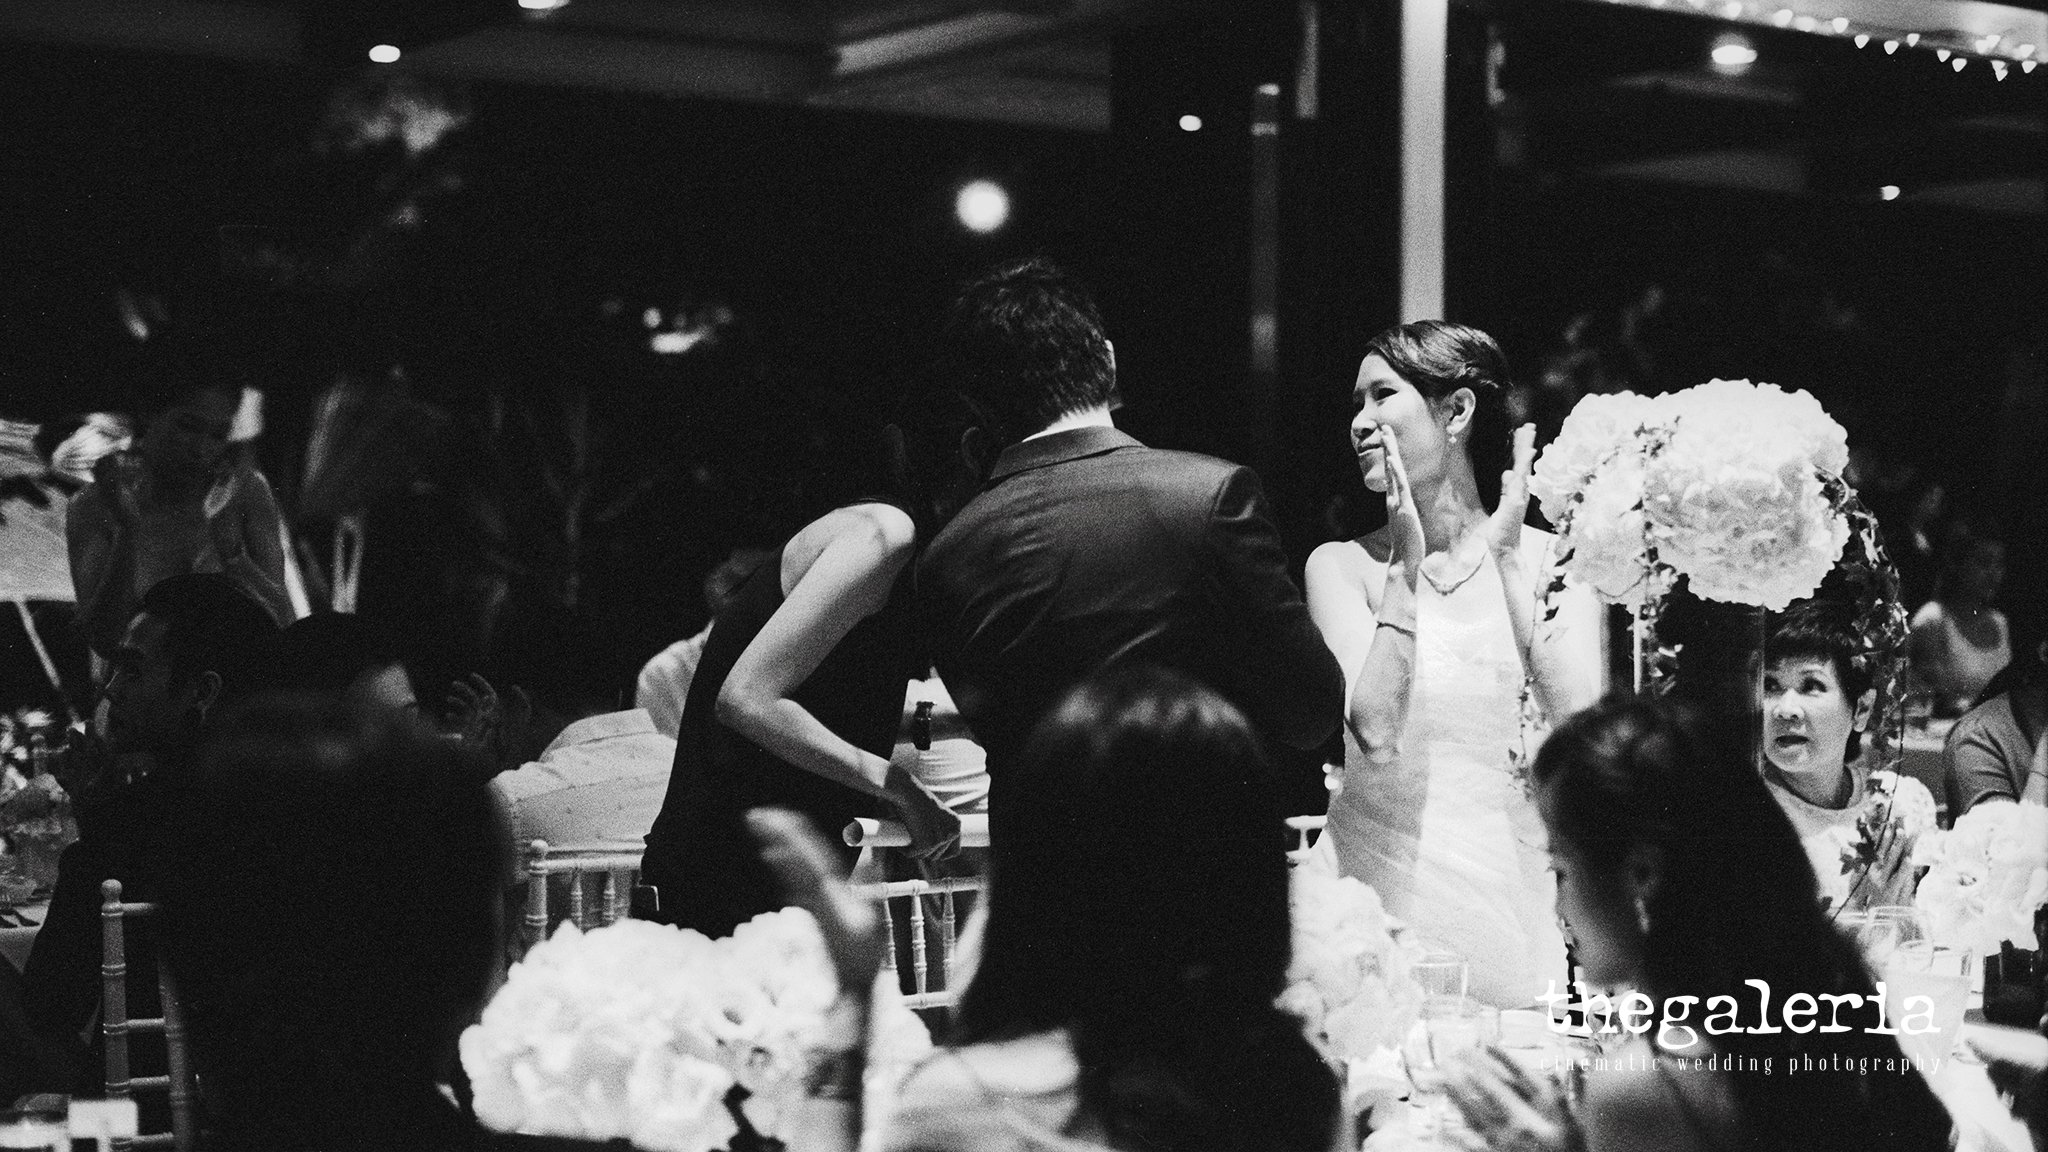 Wedding Photography: Brian Ho / thegaleria Wedding Gown: The Wedding Present Location: Suburbia @ Sentosa Film: Kodak TRI-X, +1 stop